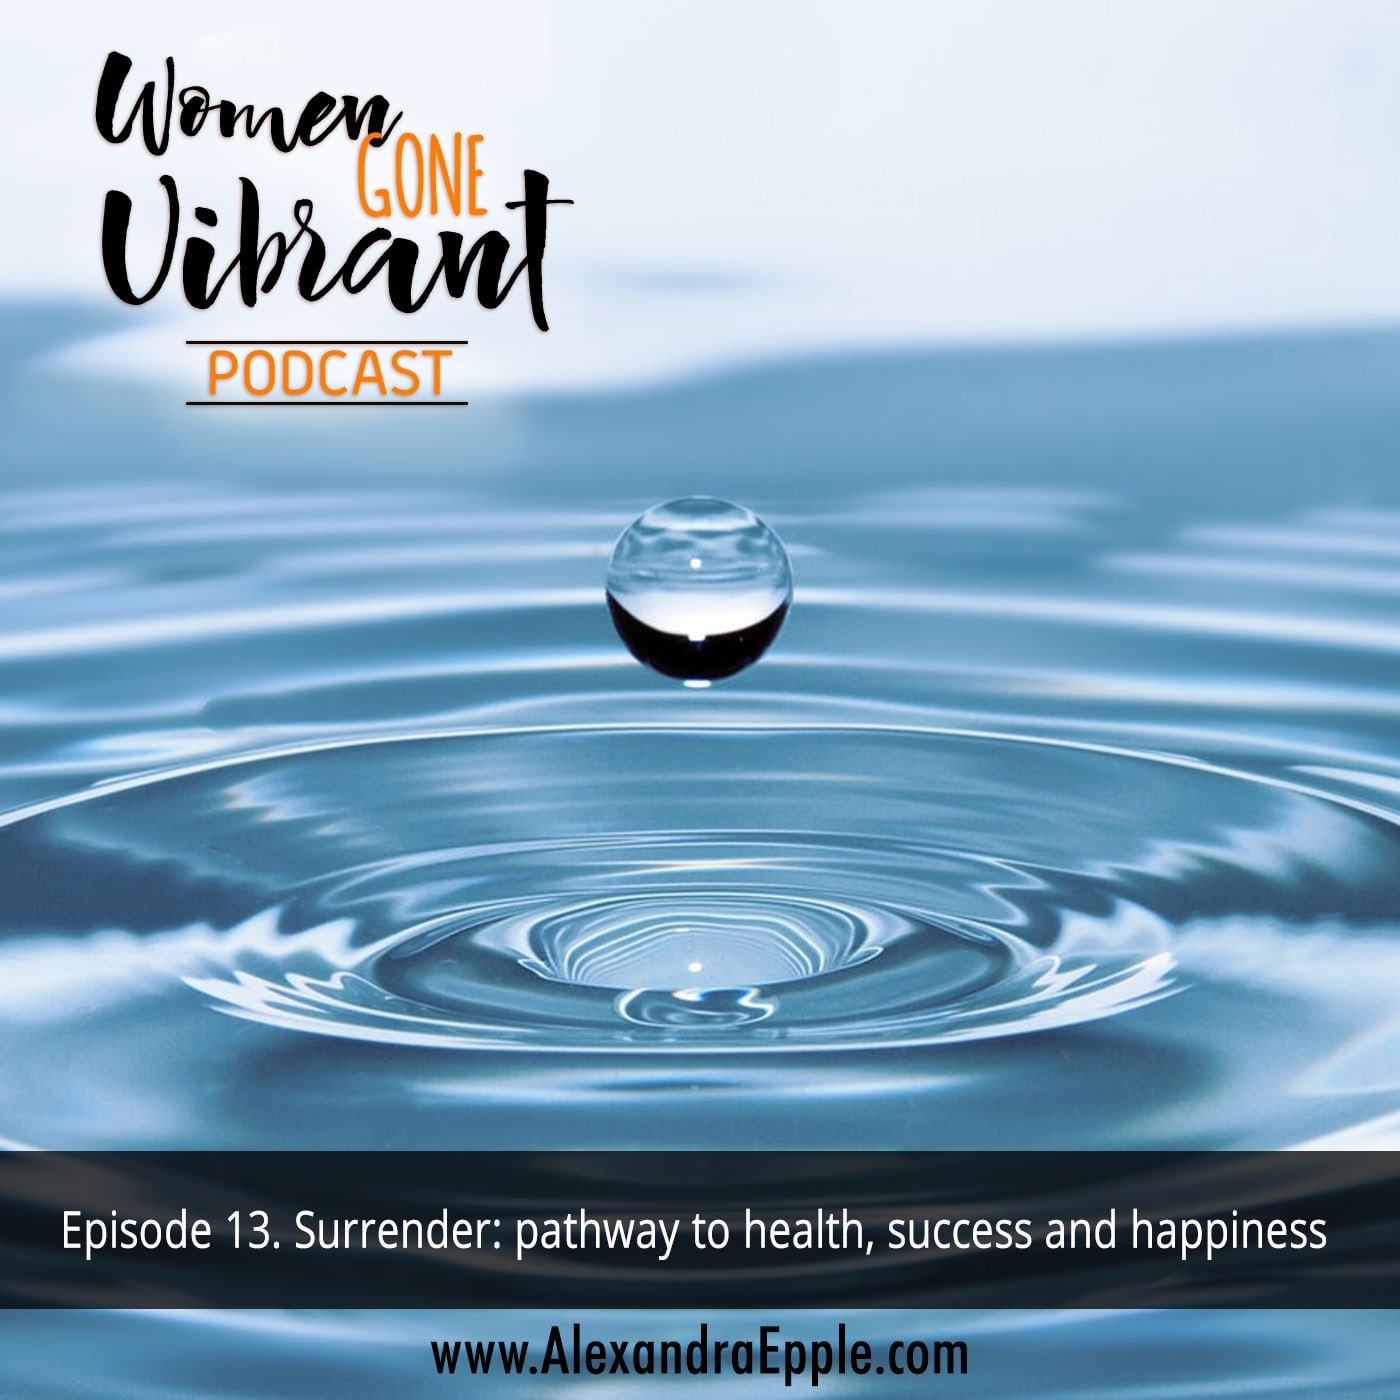 Episode 12. How to navigate grief and loss skillfully